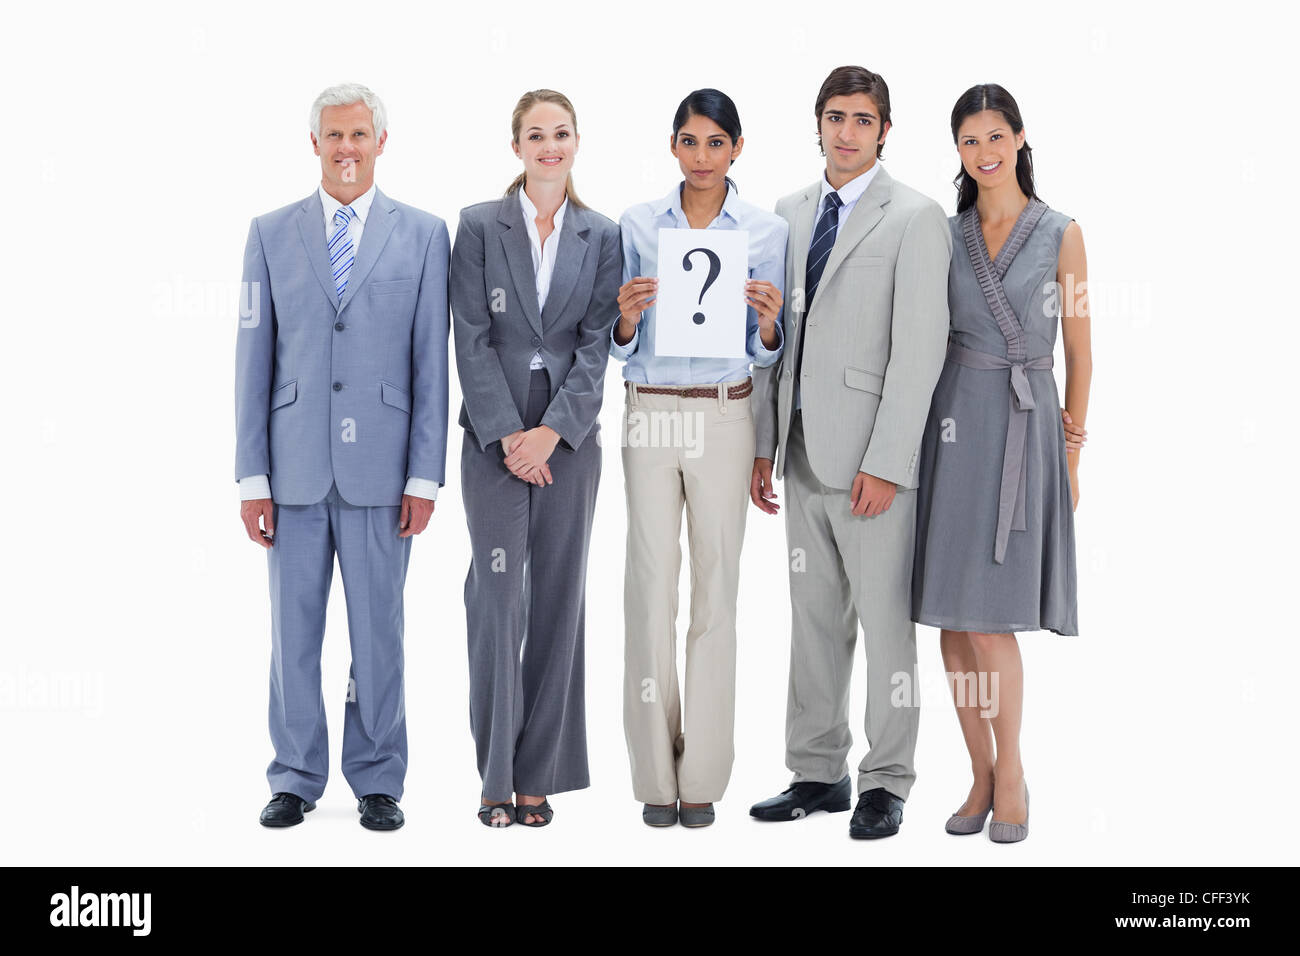 Business team holding a sign of a question mark - Stock Image